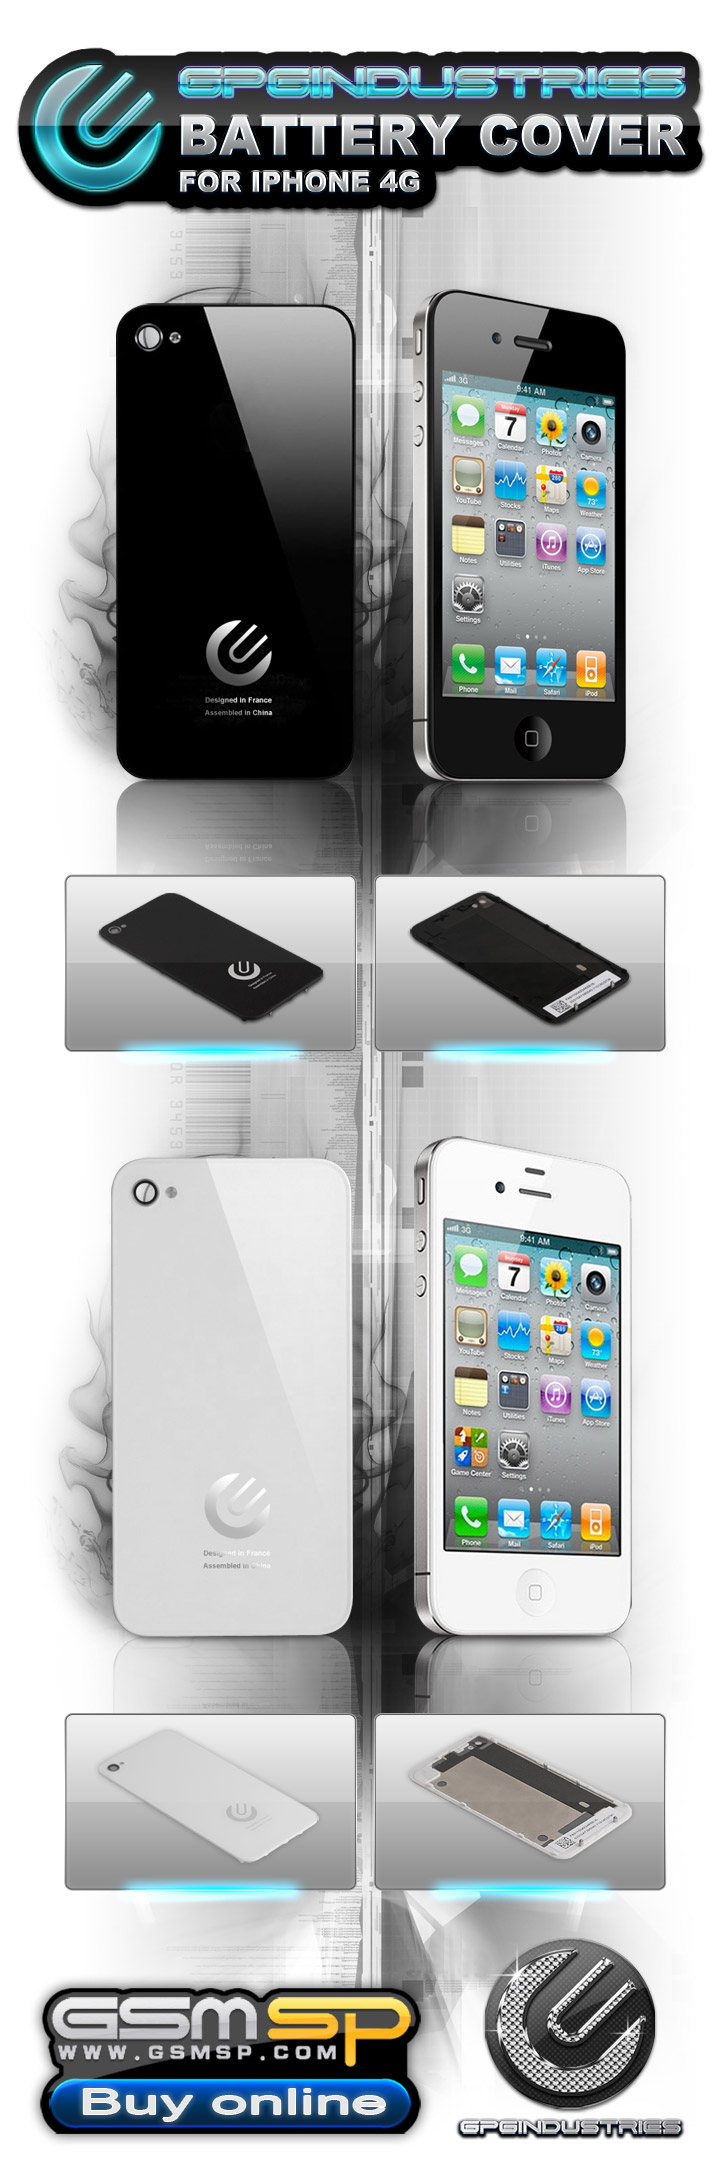 2011 07 26 GPG battery cover for Iphone4G 725